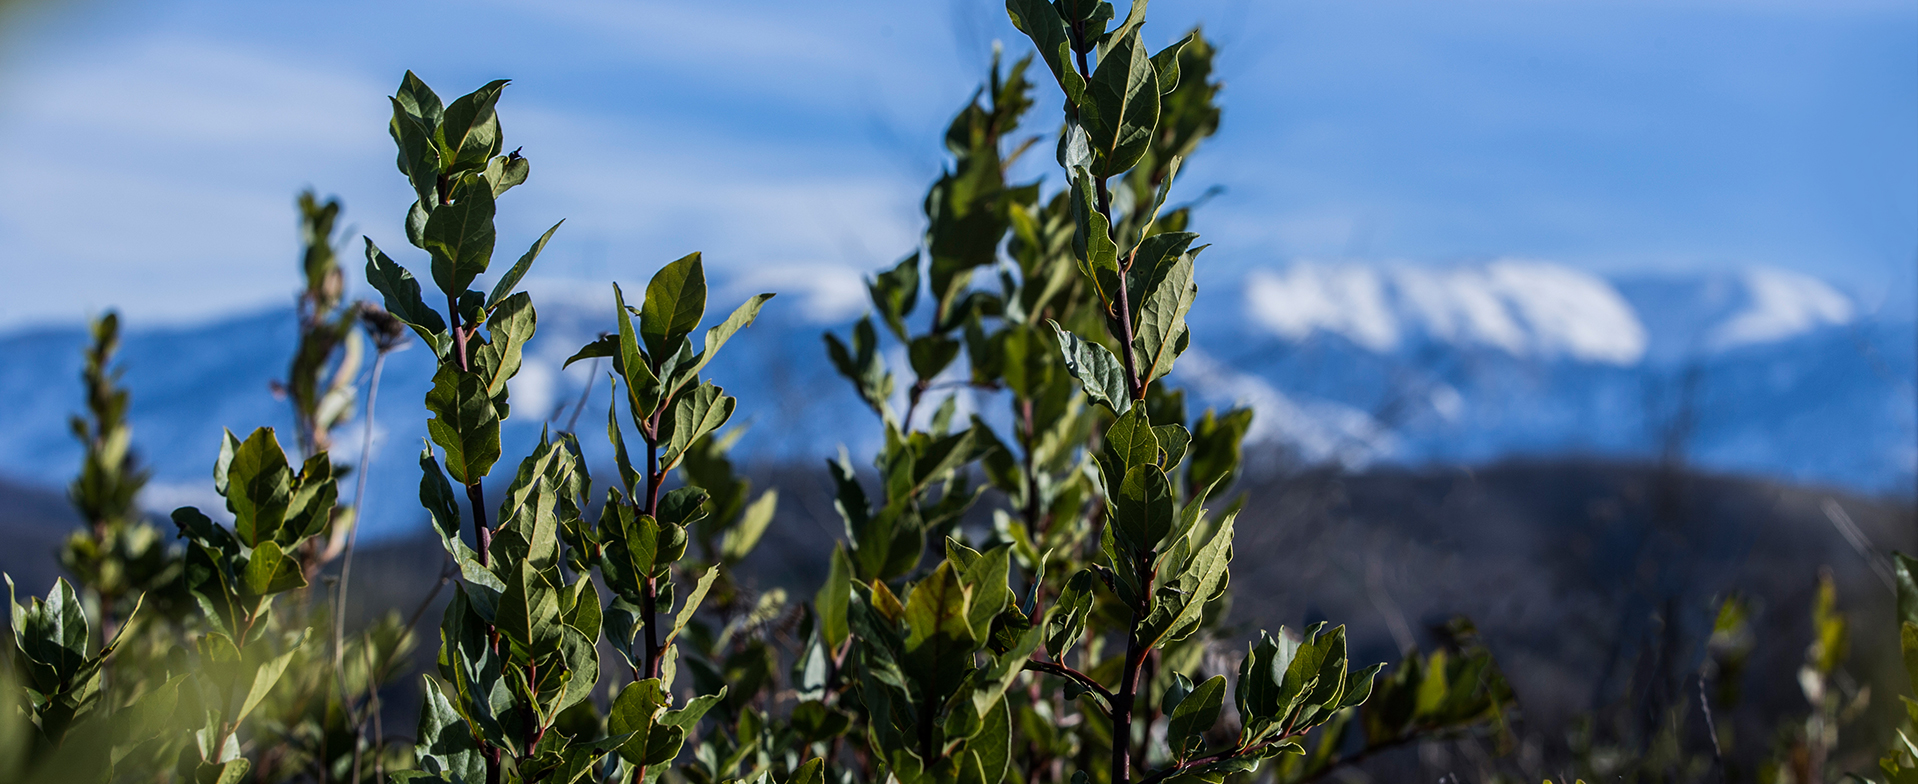 BAY LEAVES WITH MOUNTAINS IN THE BACKROUND